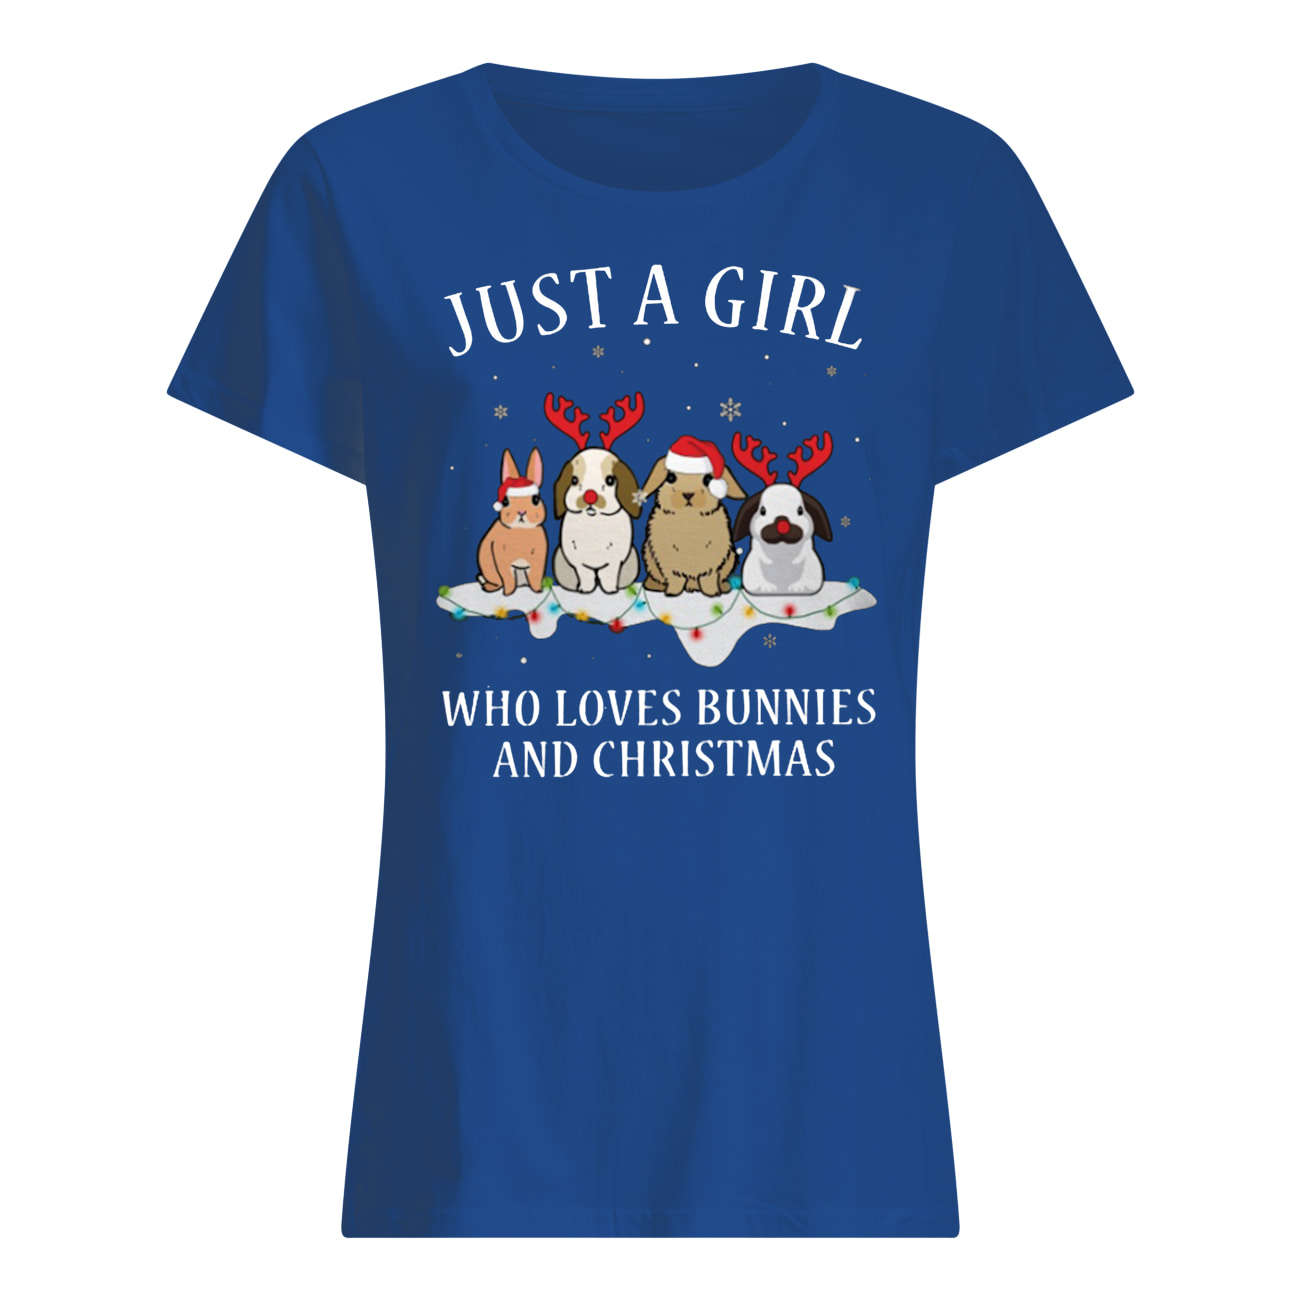 Just a girl who loves bunnies and christmas womens shirt